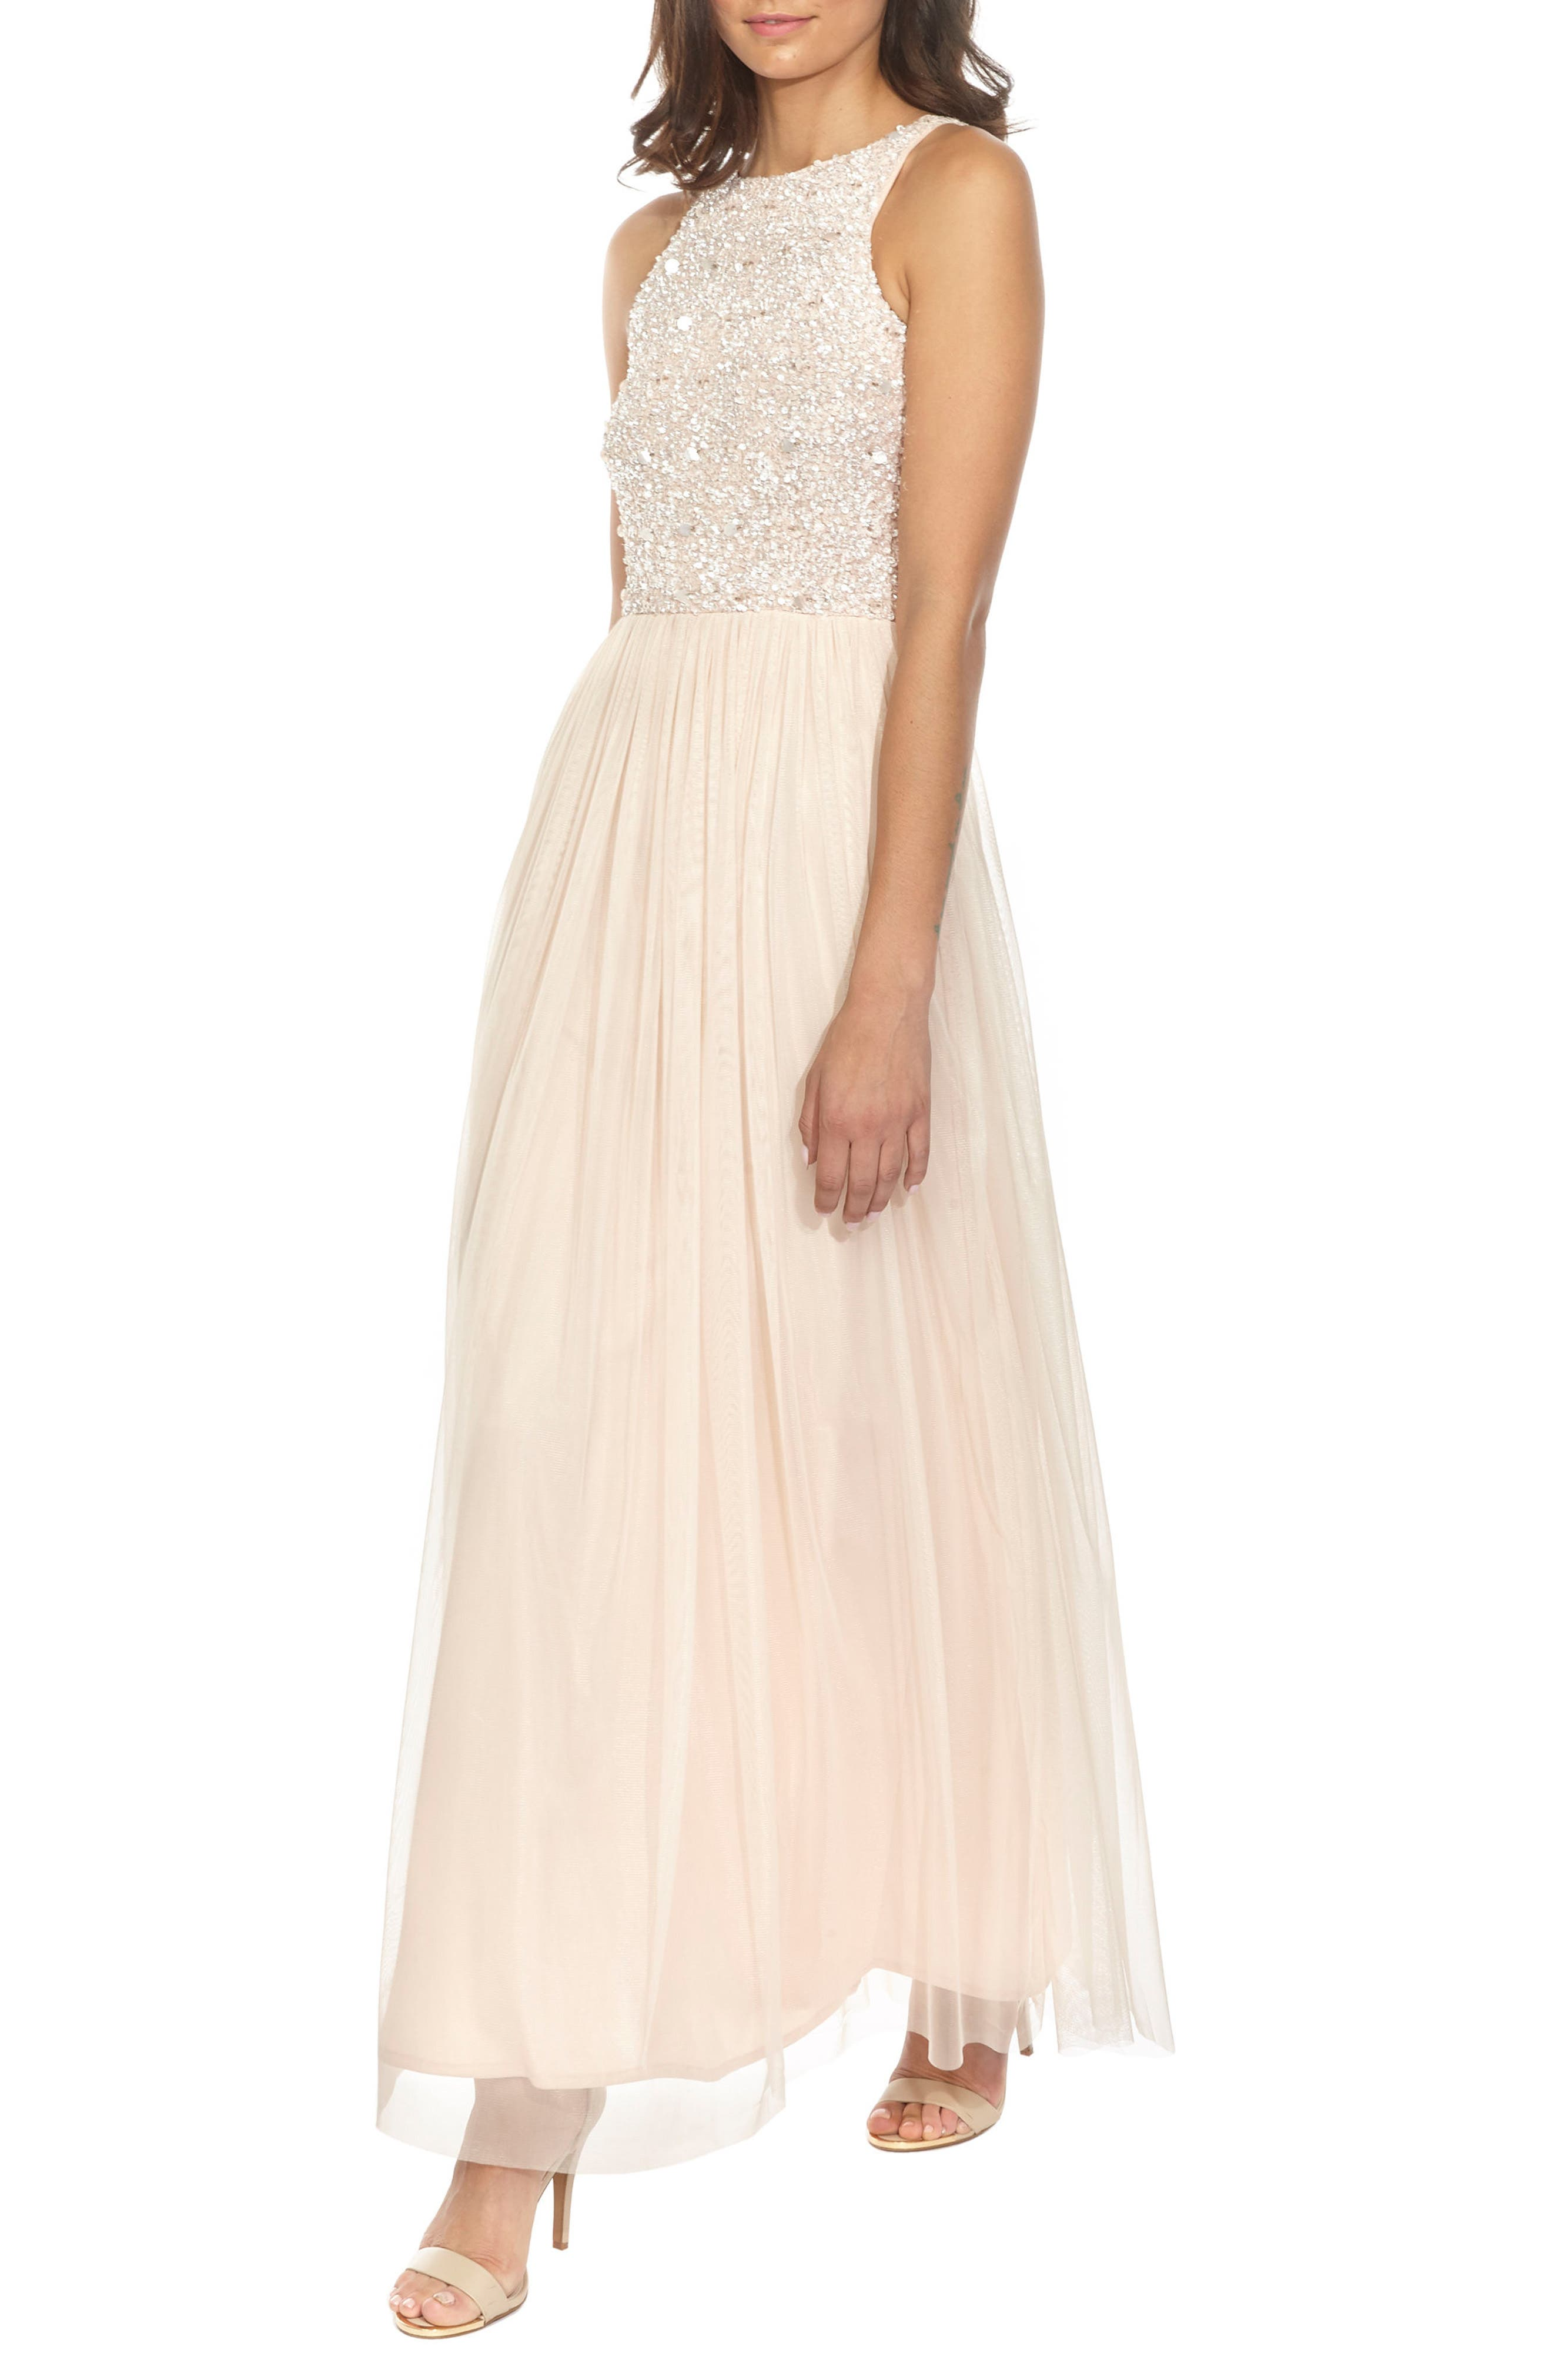 Picasso Embellished Bodice Maxi Dress,                             Alternate thumbnail 3, color,                             250